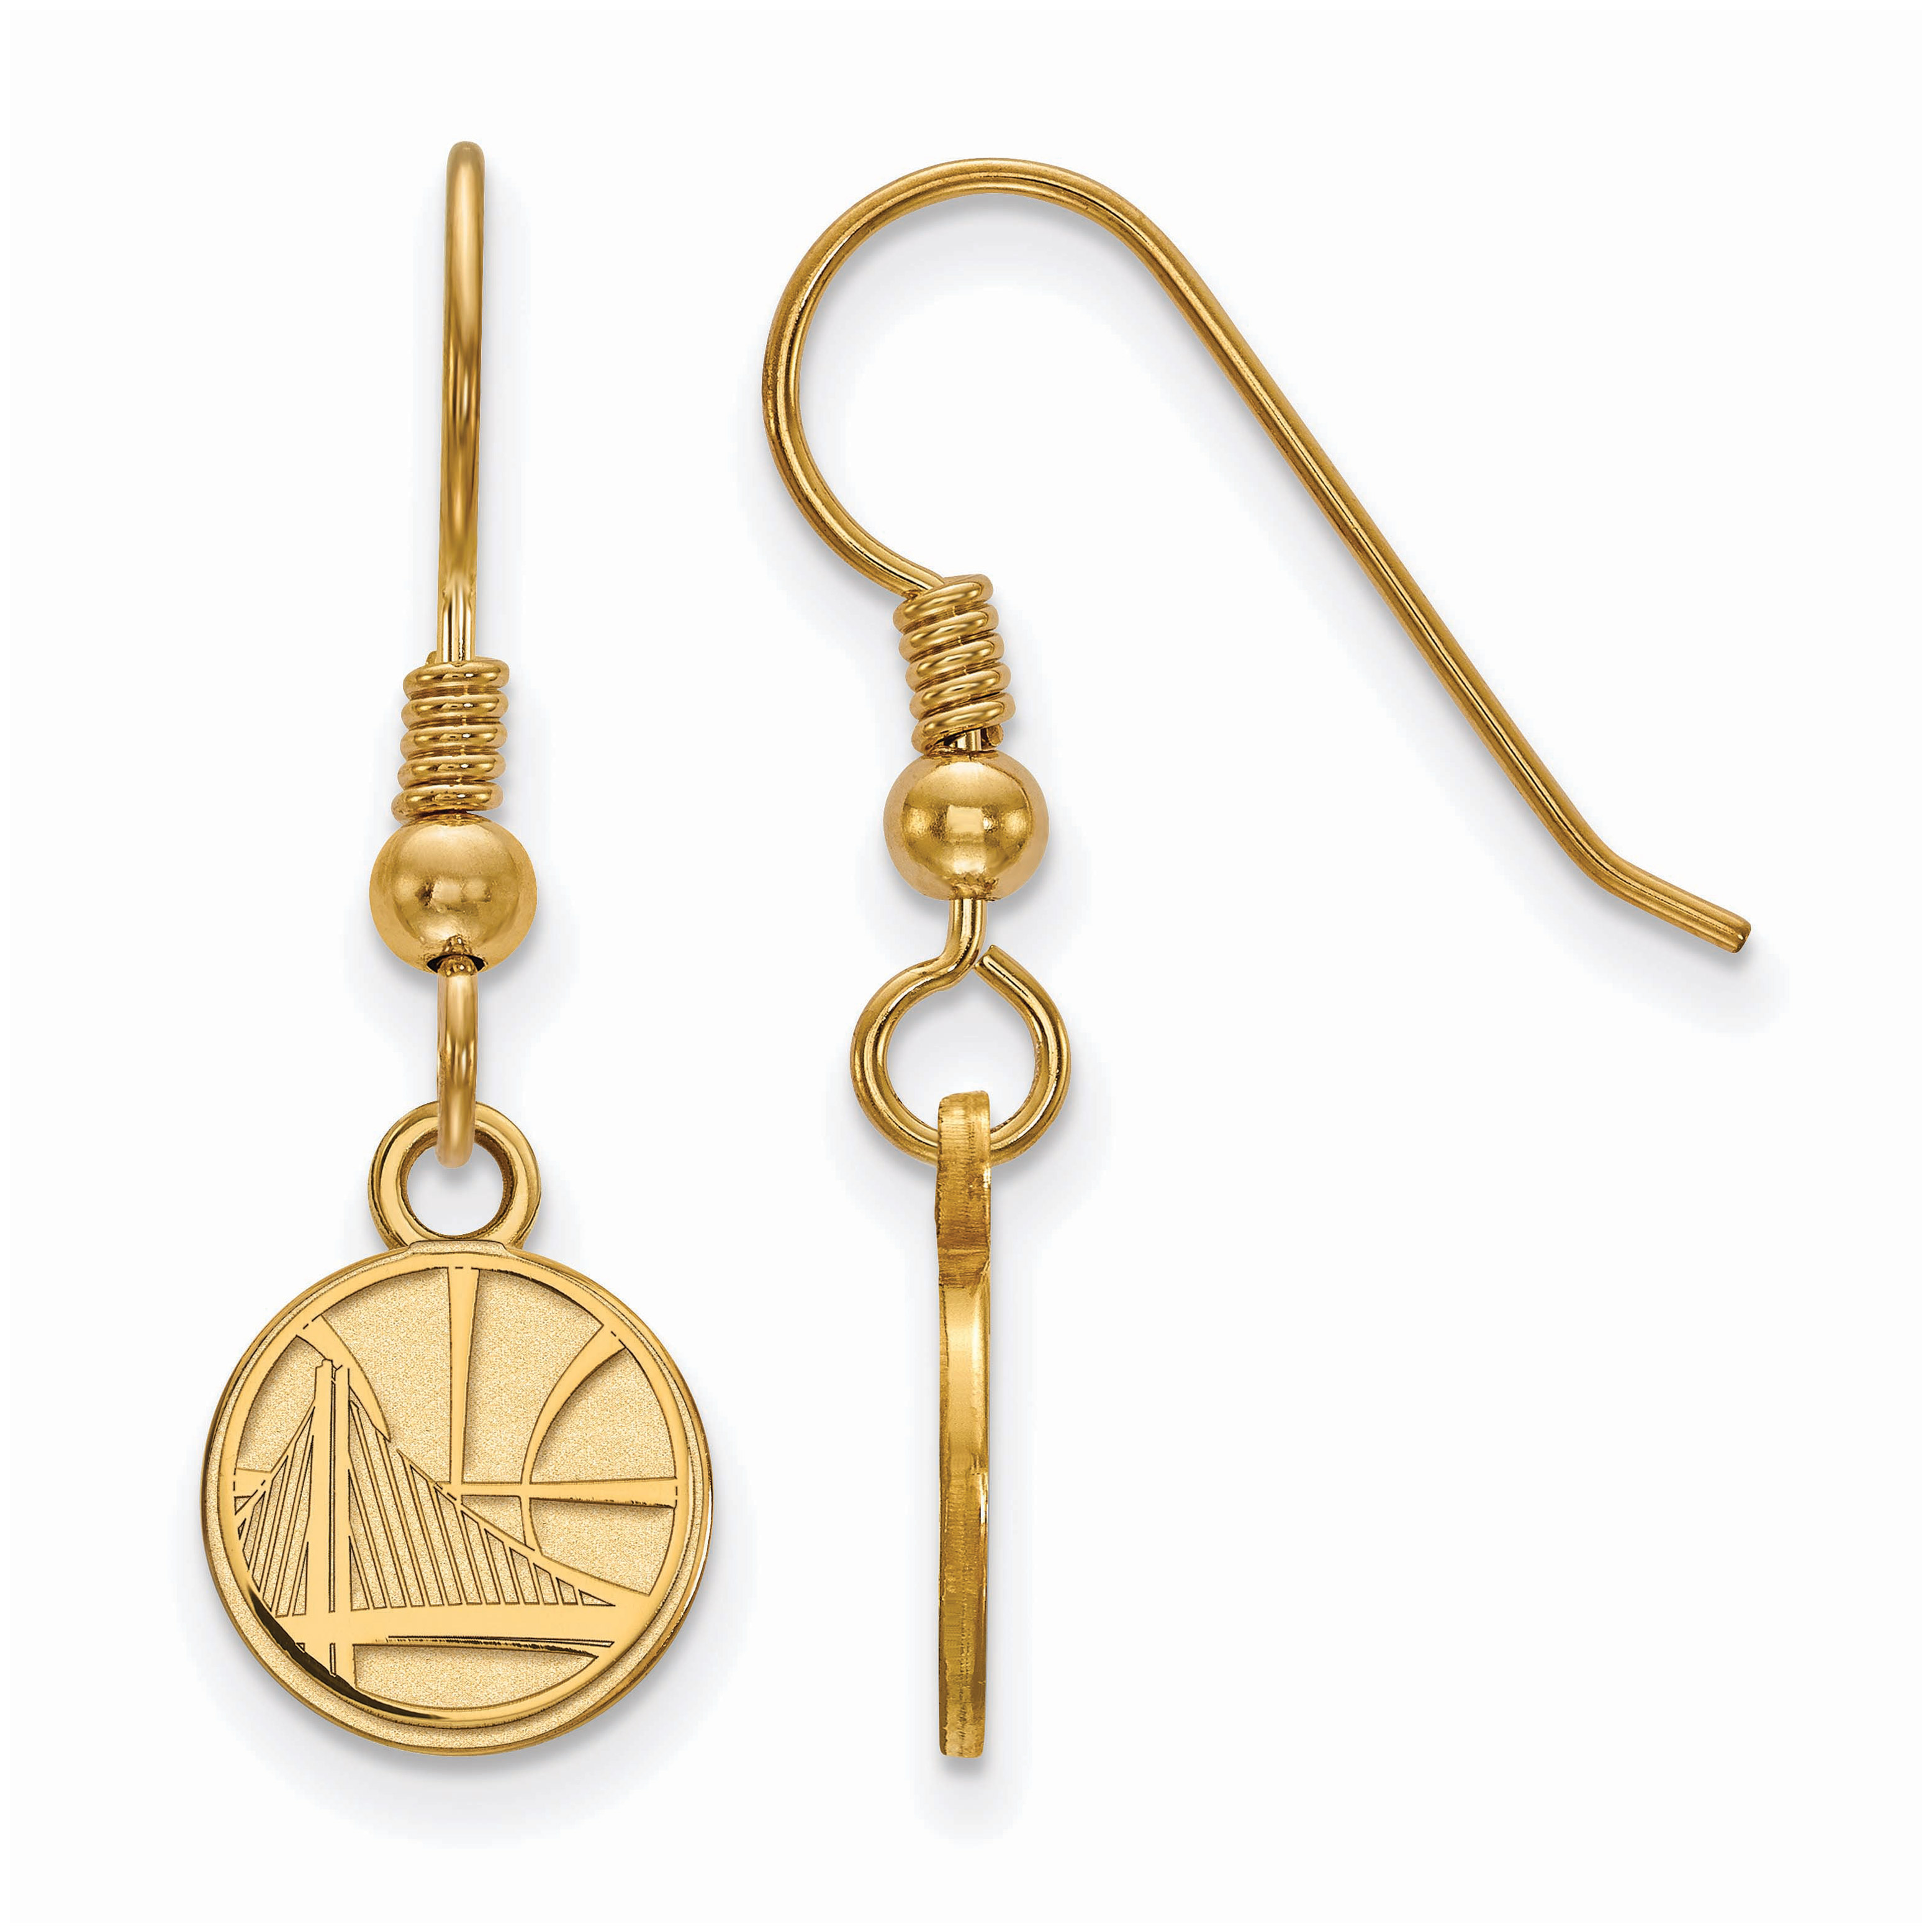 Golden State Warriors Women's Gold Plated XS Dangle Earrings - No Size